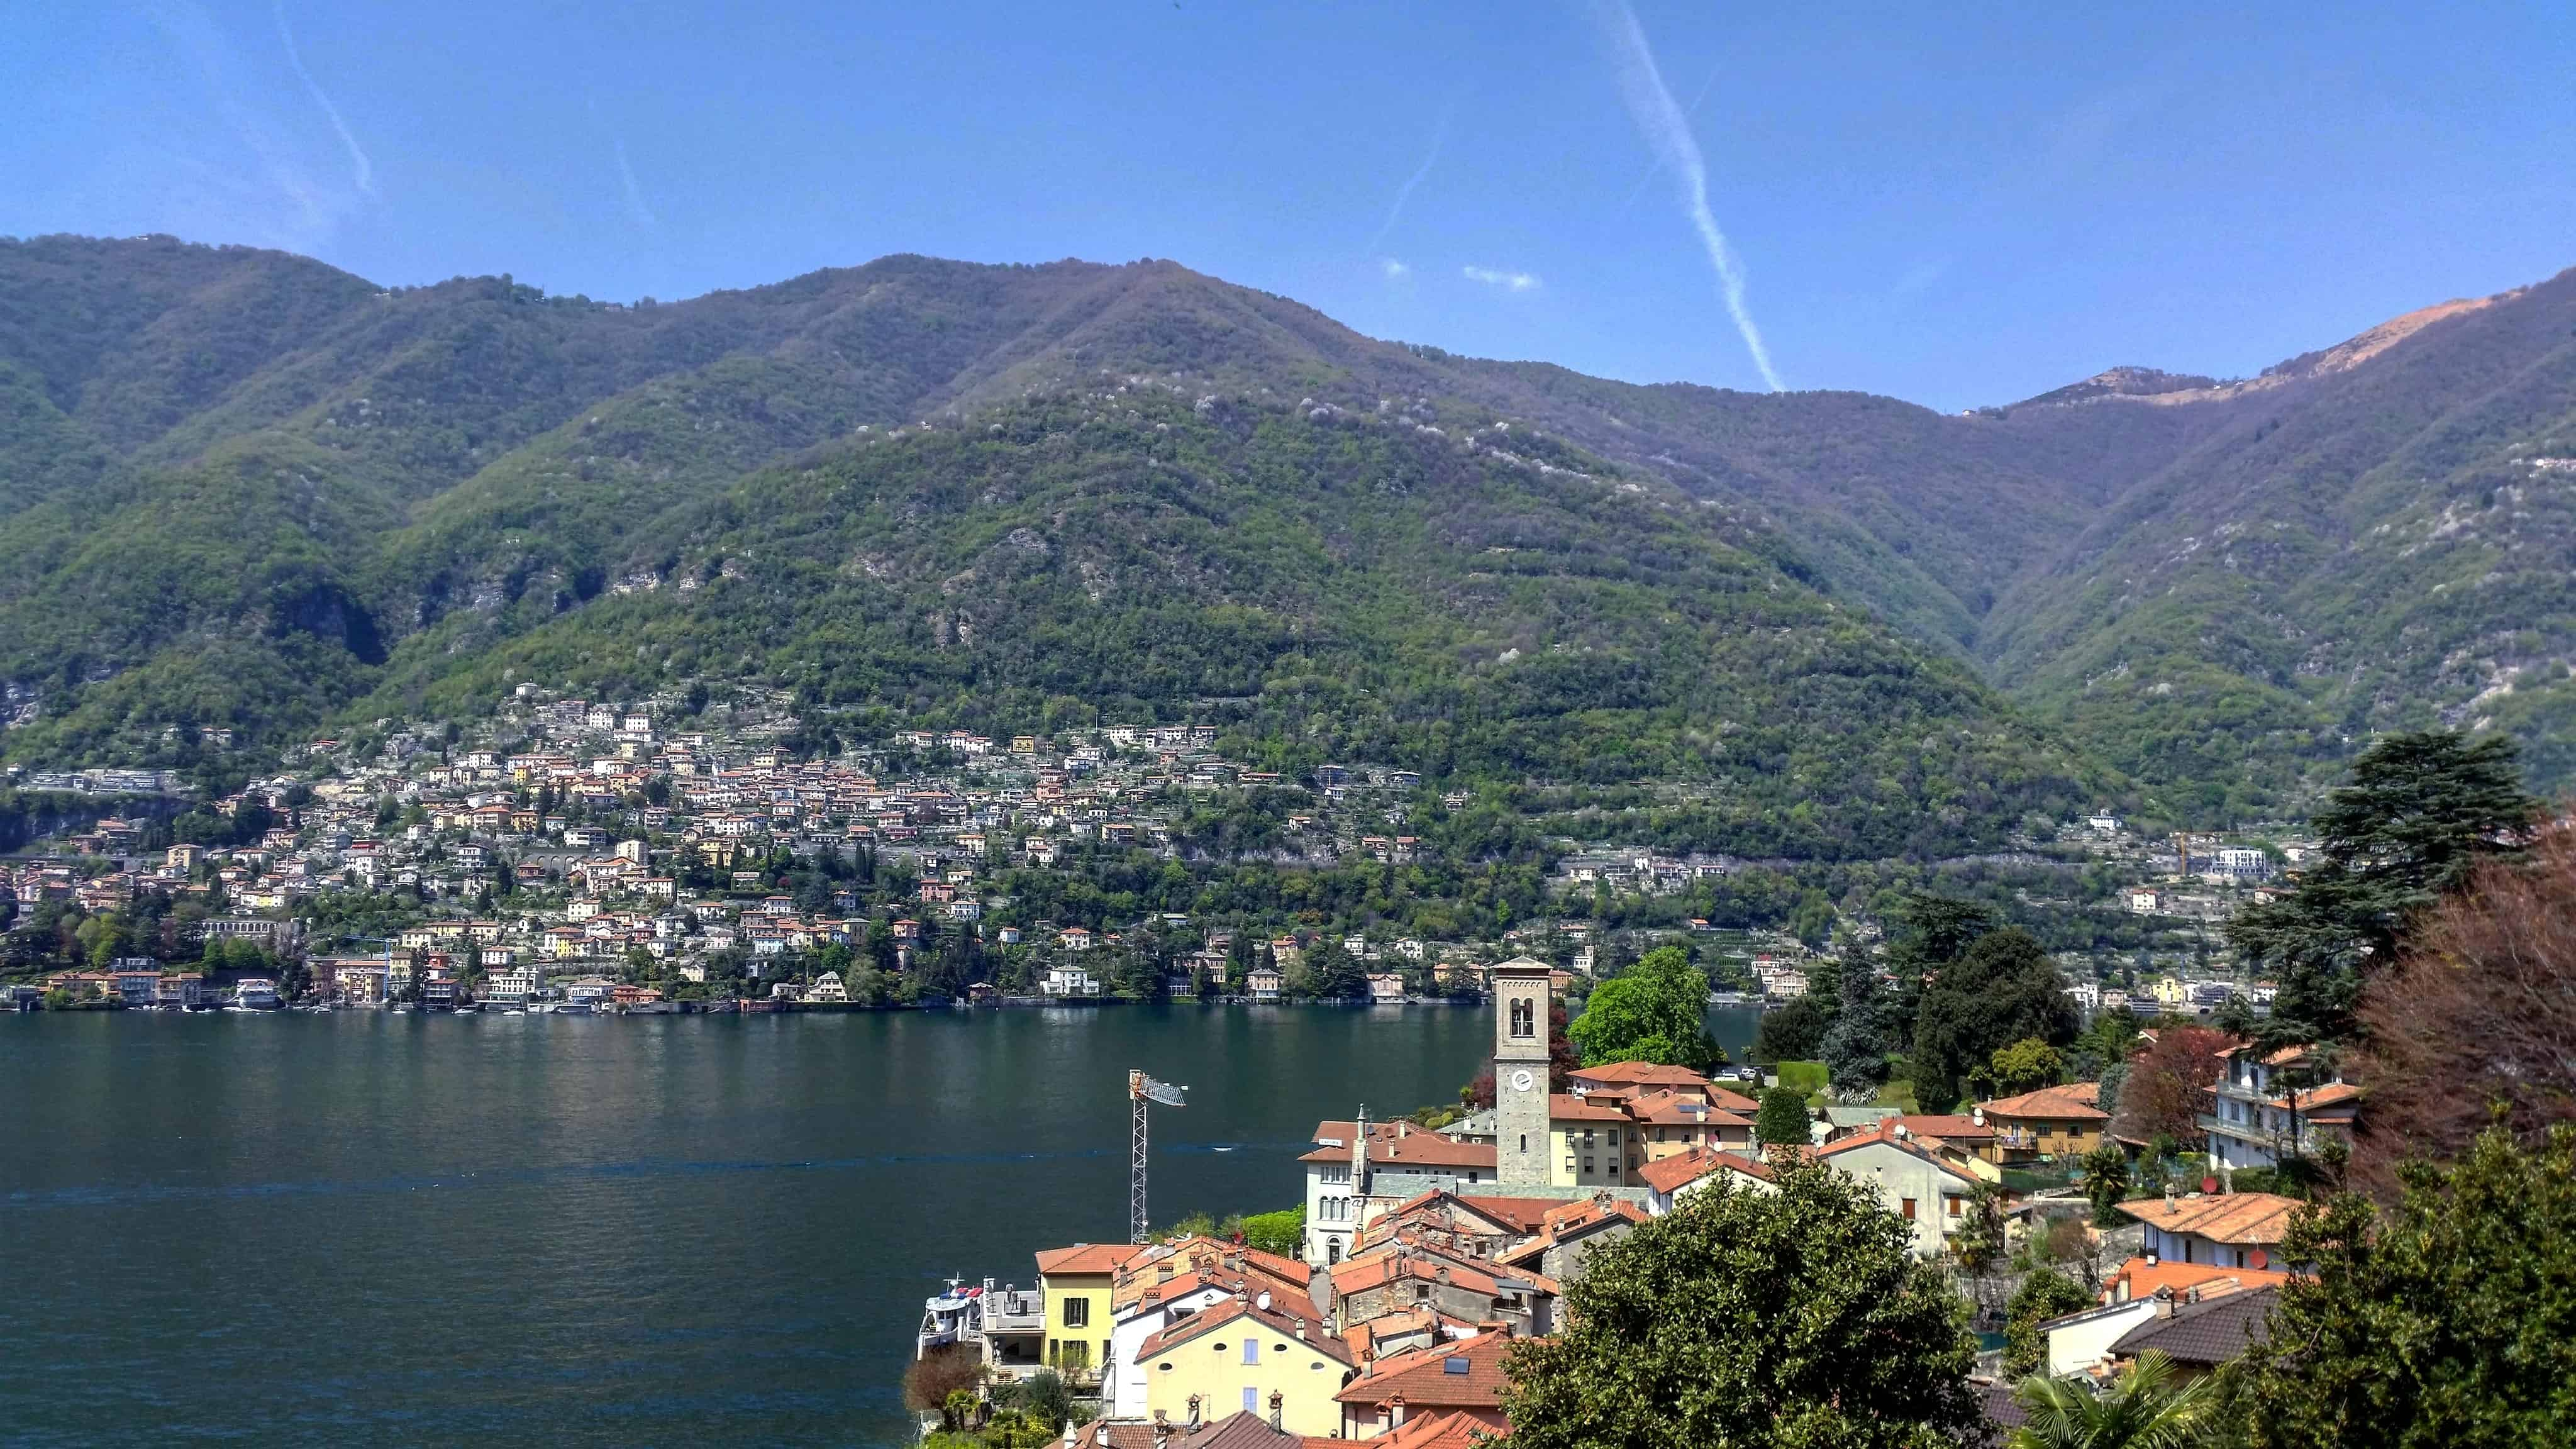 From Nesso to Torno on Lake Como